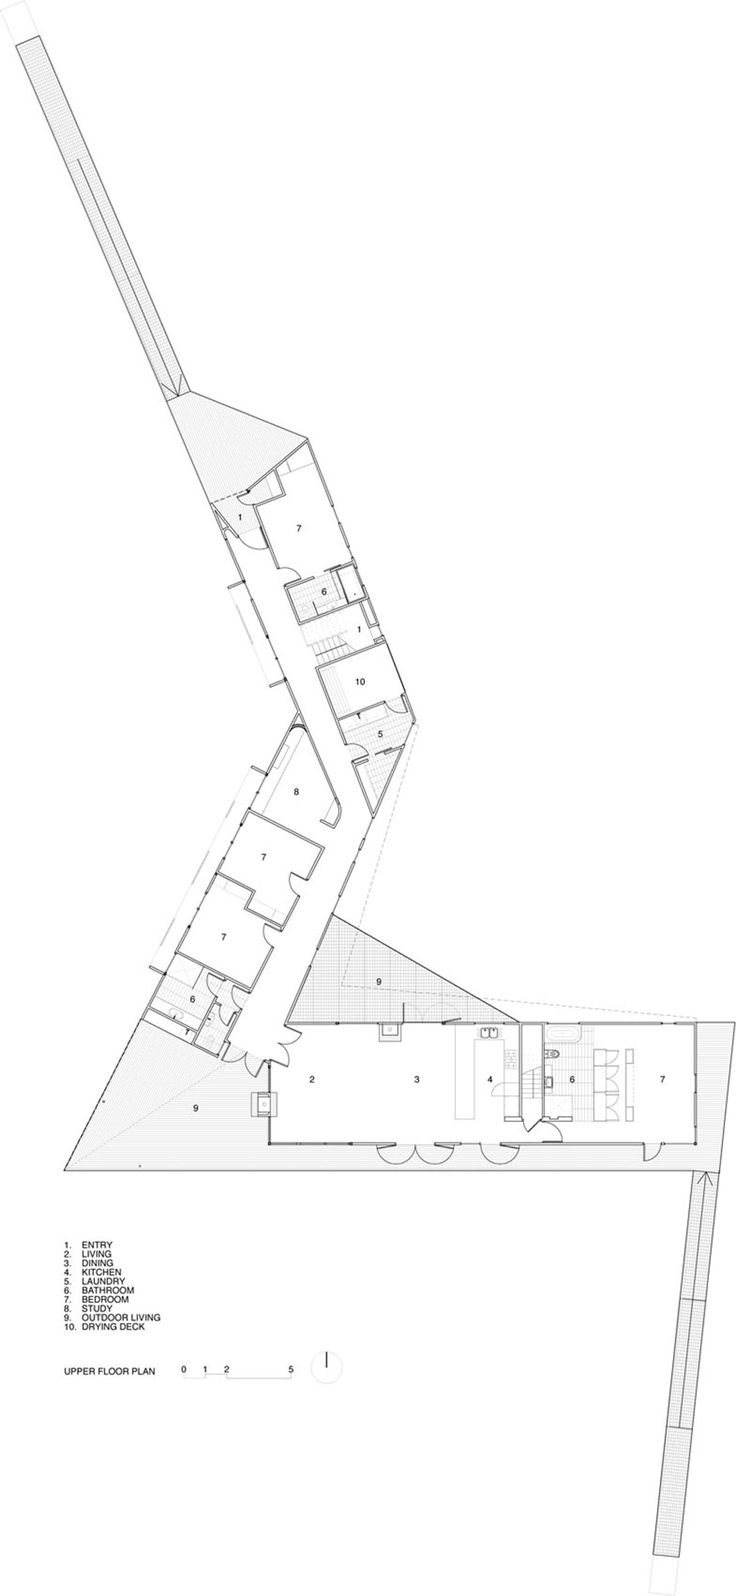 83 best 06 sexy floor plans images on pinterest floor plans iredale pedersen hook architects nannup house architecture planarchitecture